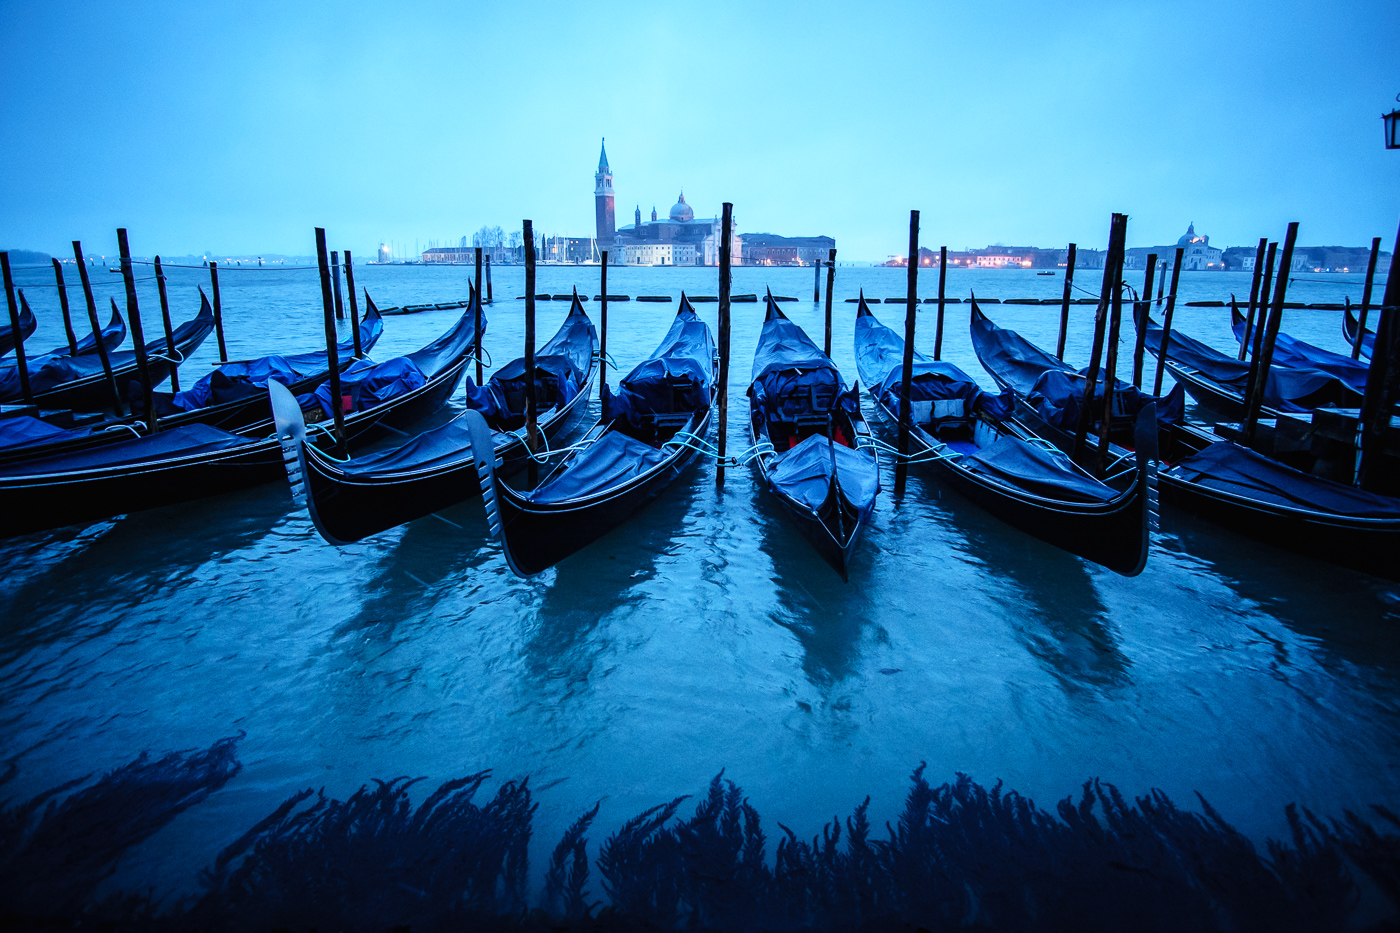 Gondolas in Venice at blue hour before sunrise - it was snowing! © Paul Nguyen